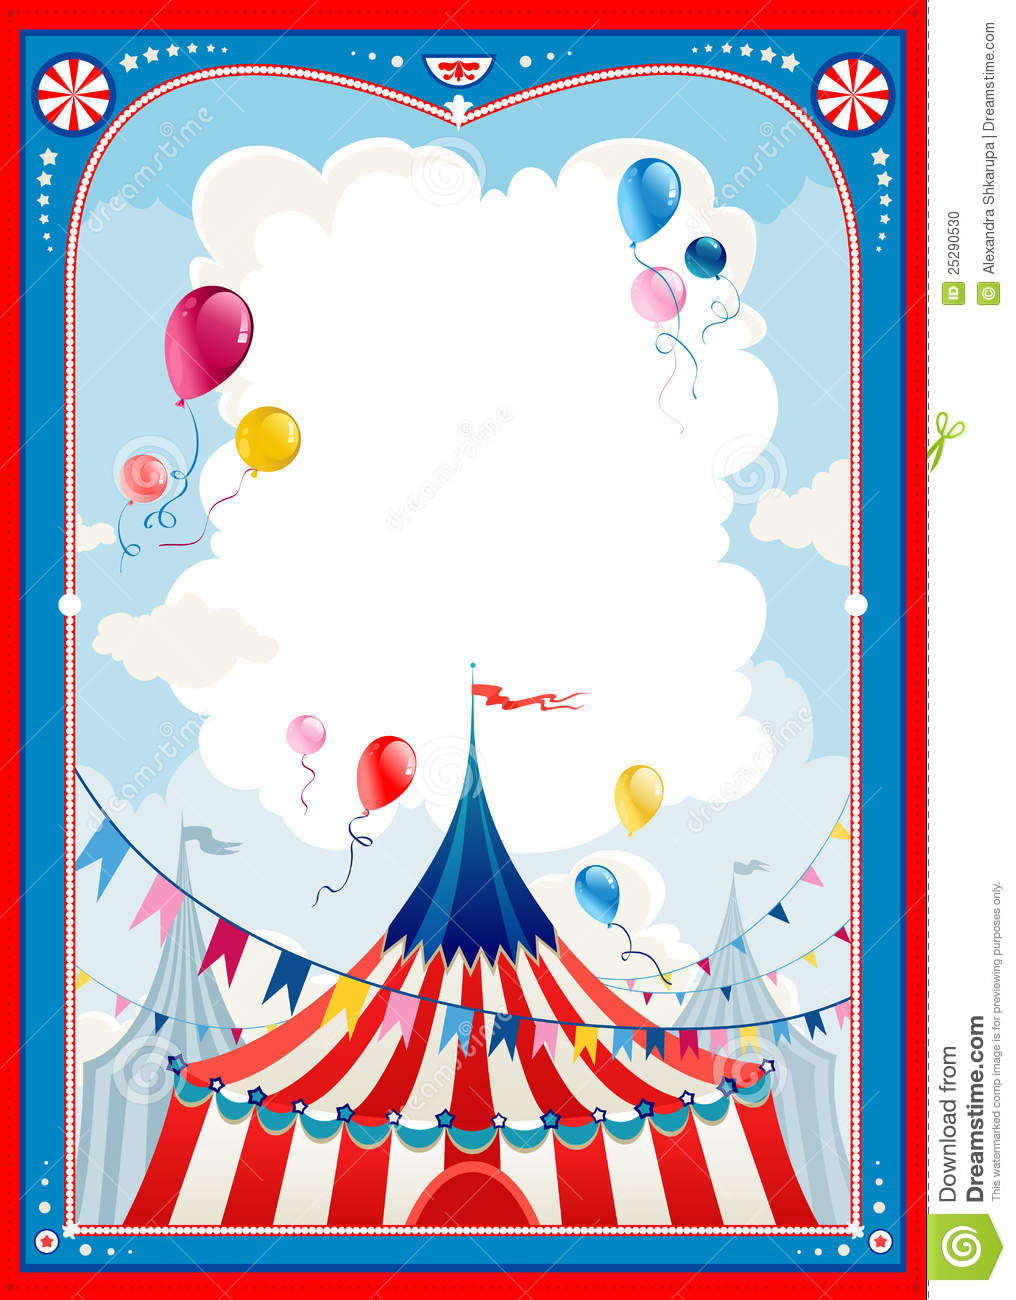 Circus Theme Invitation Templates is nice invitations ideas